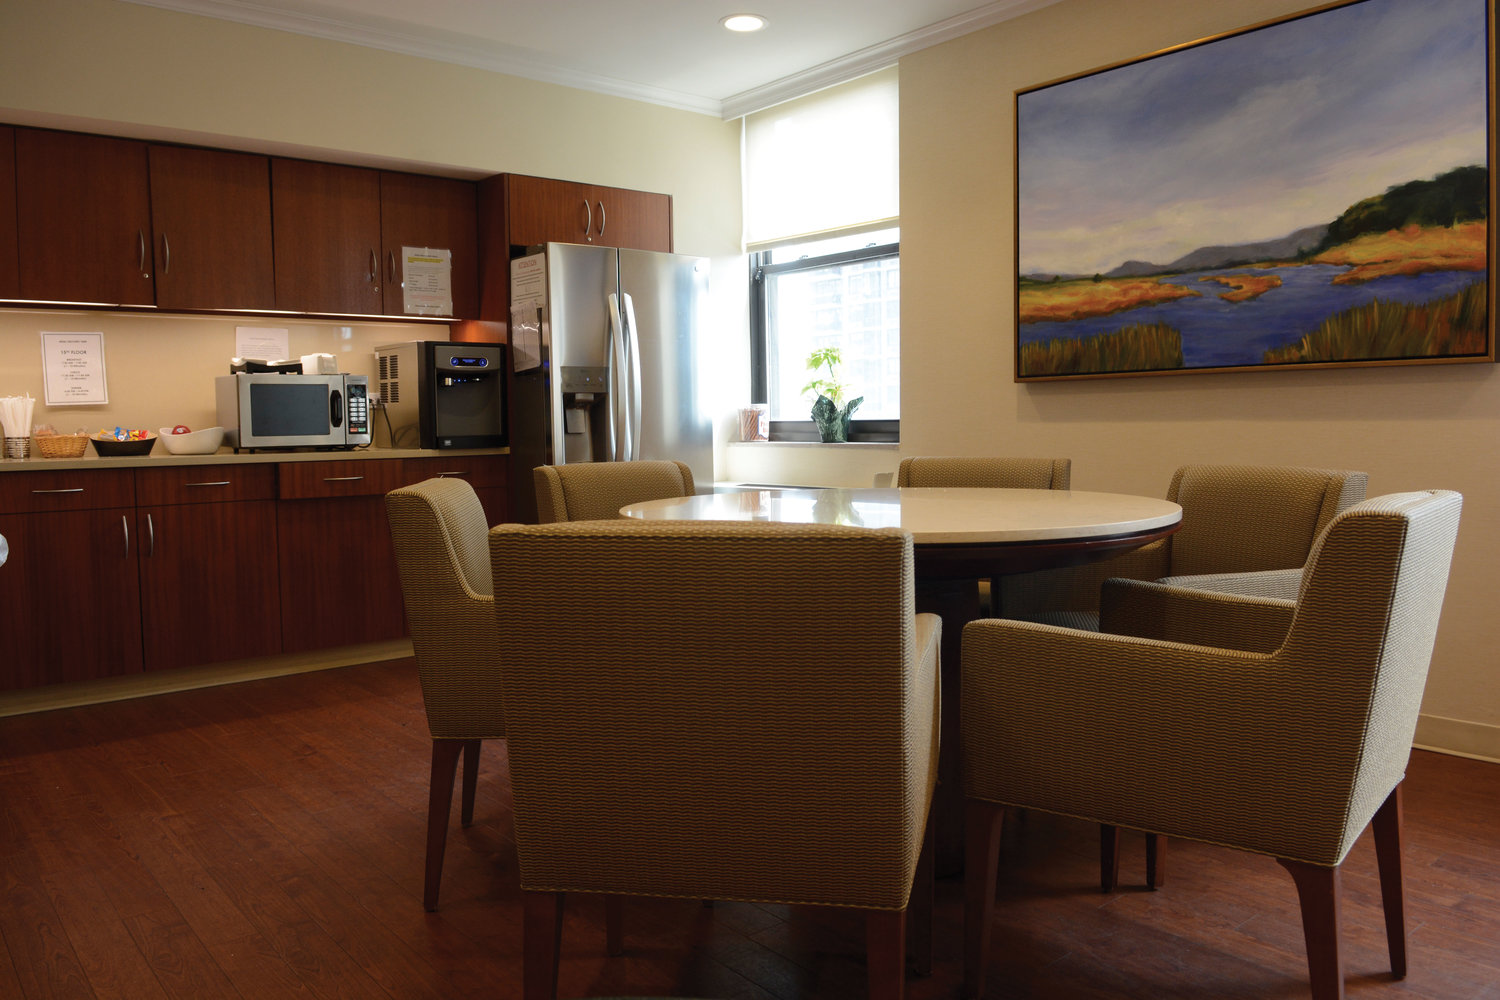 The kitchen and lounge is open to staff, patients and visitors to have a conversation or enjoy a quick bite to eat at Dawn Greene.